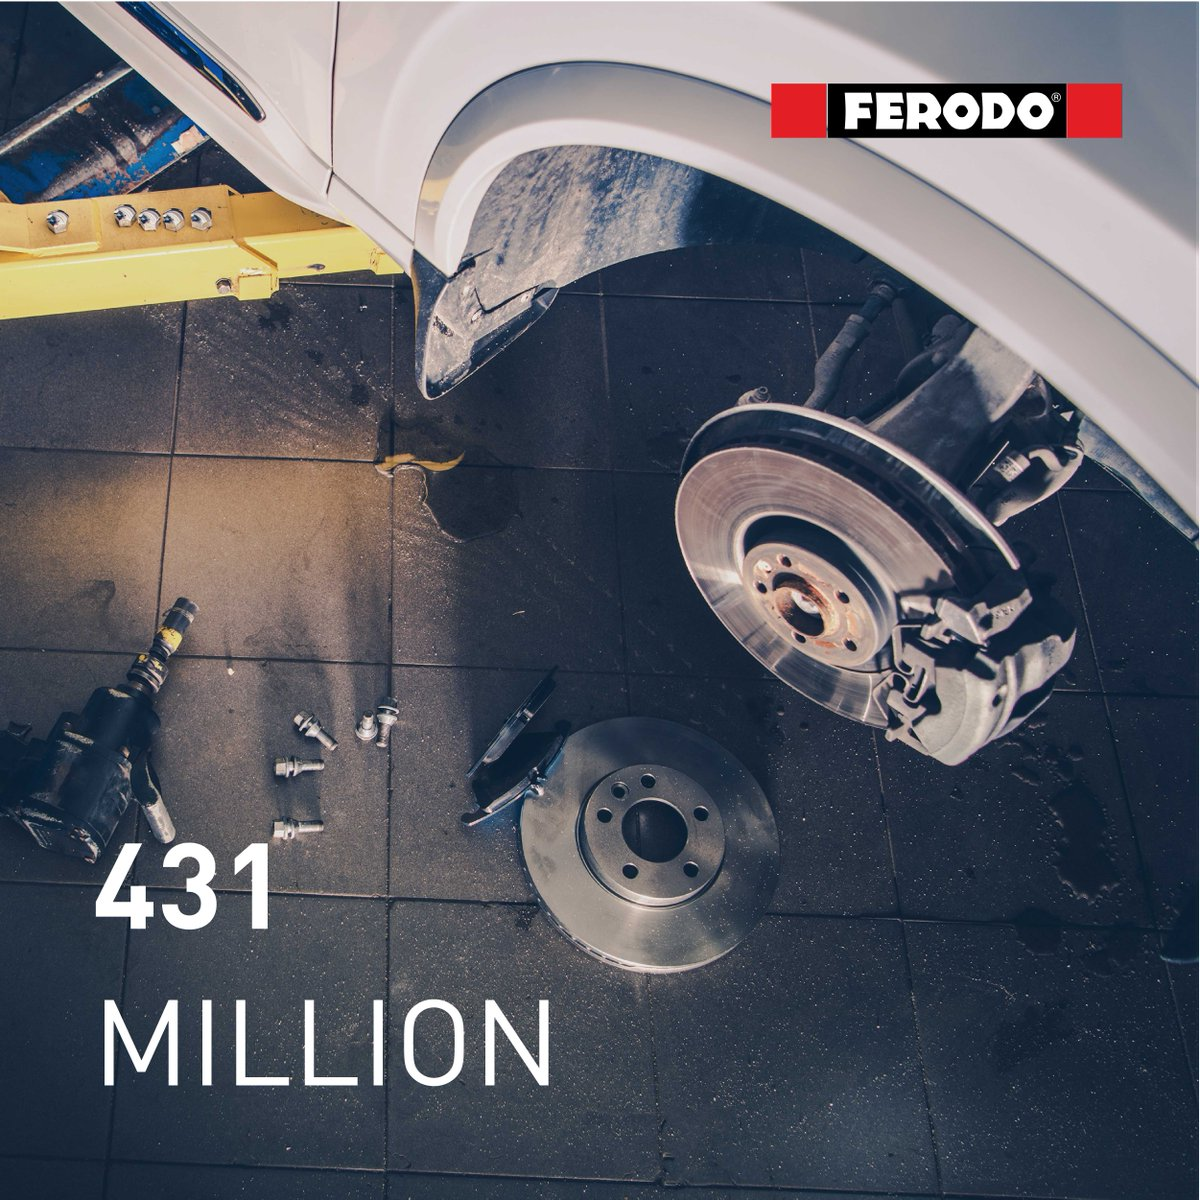 Why choose Ferodo? In the last 10 years, we have produced over 431 million brake pads as original equipment. We are a preferred partner to vehicle manufacturers. https://t.co/nsiZ3YAaYM